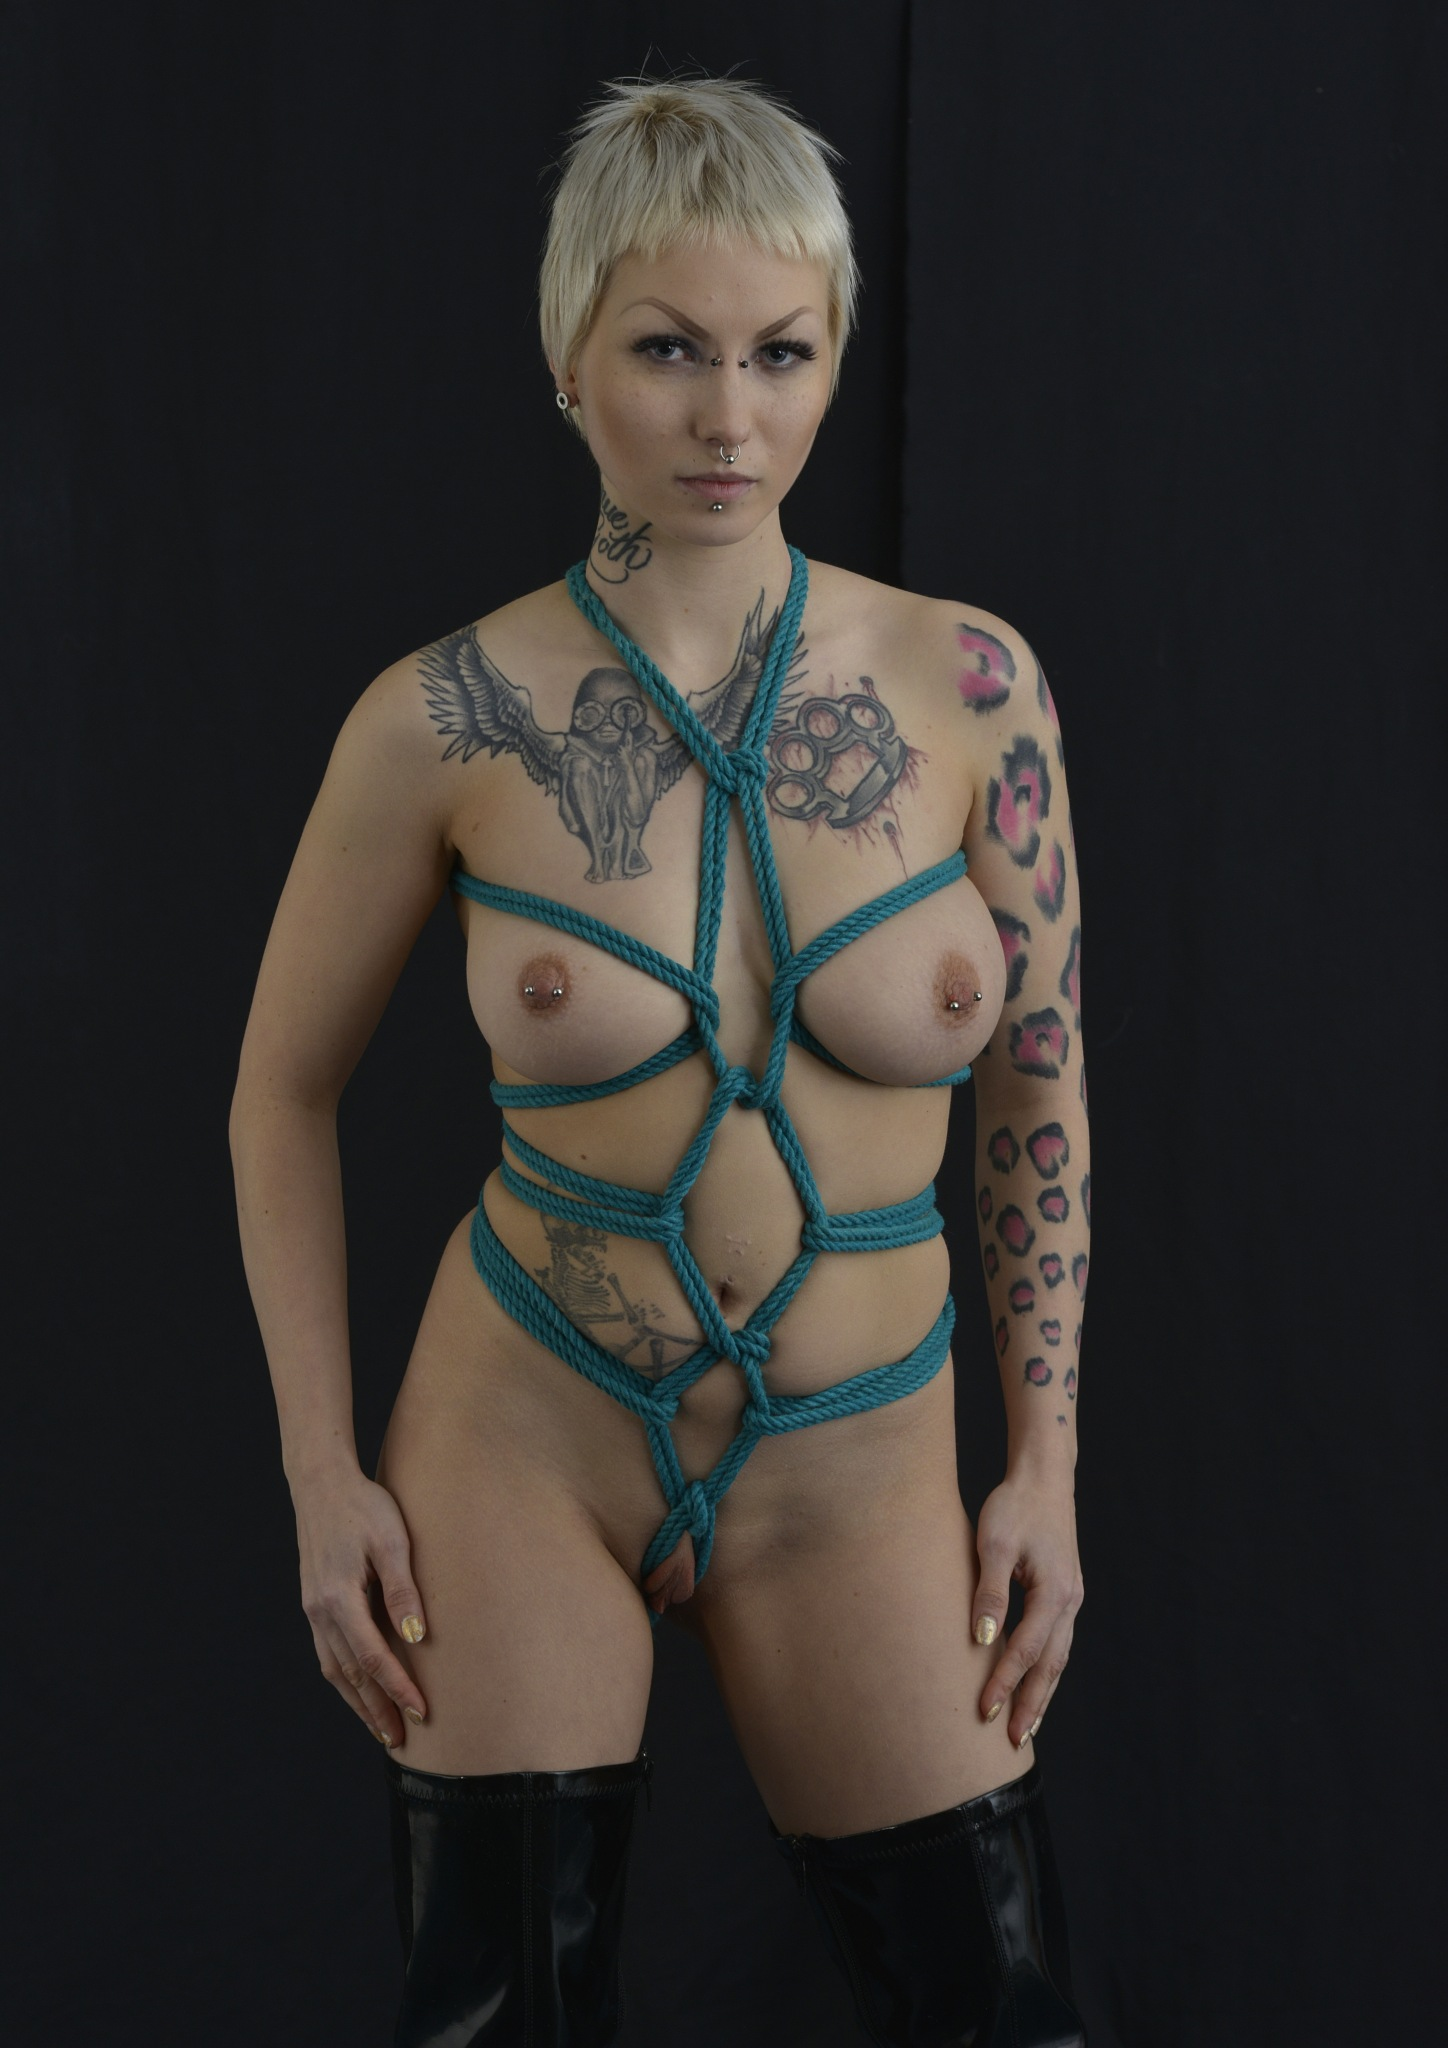 She looks good in ropes by Bworks